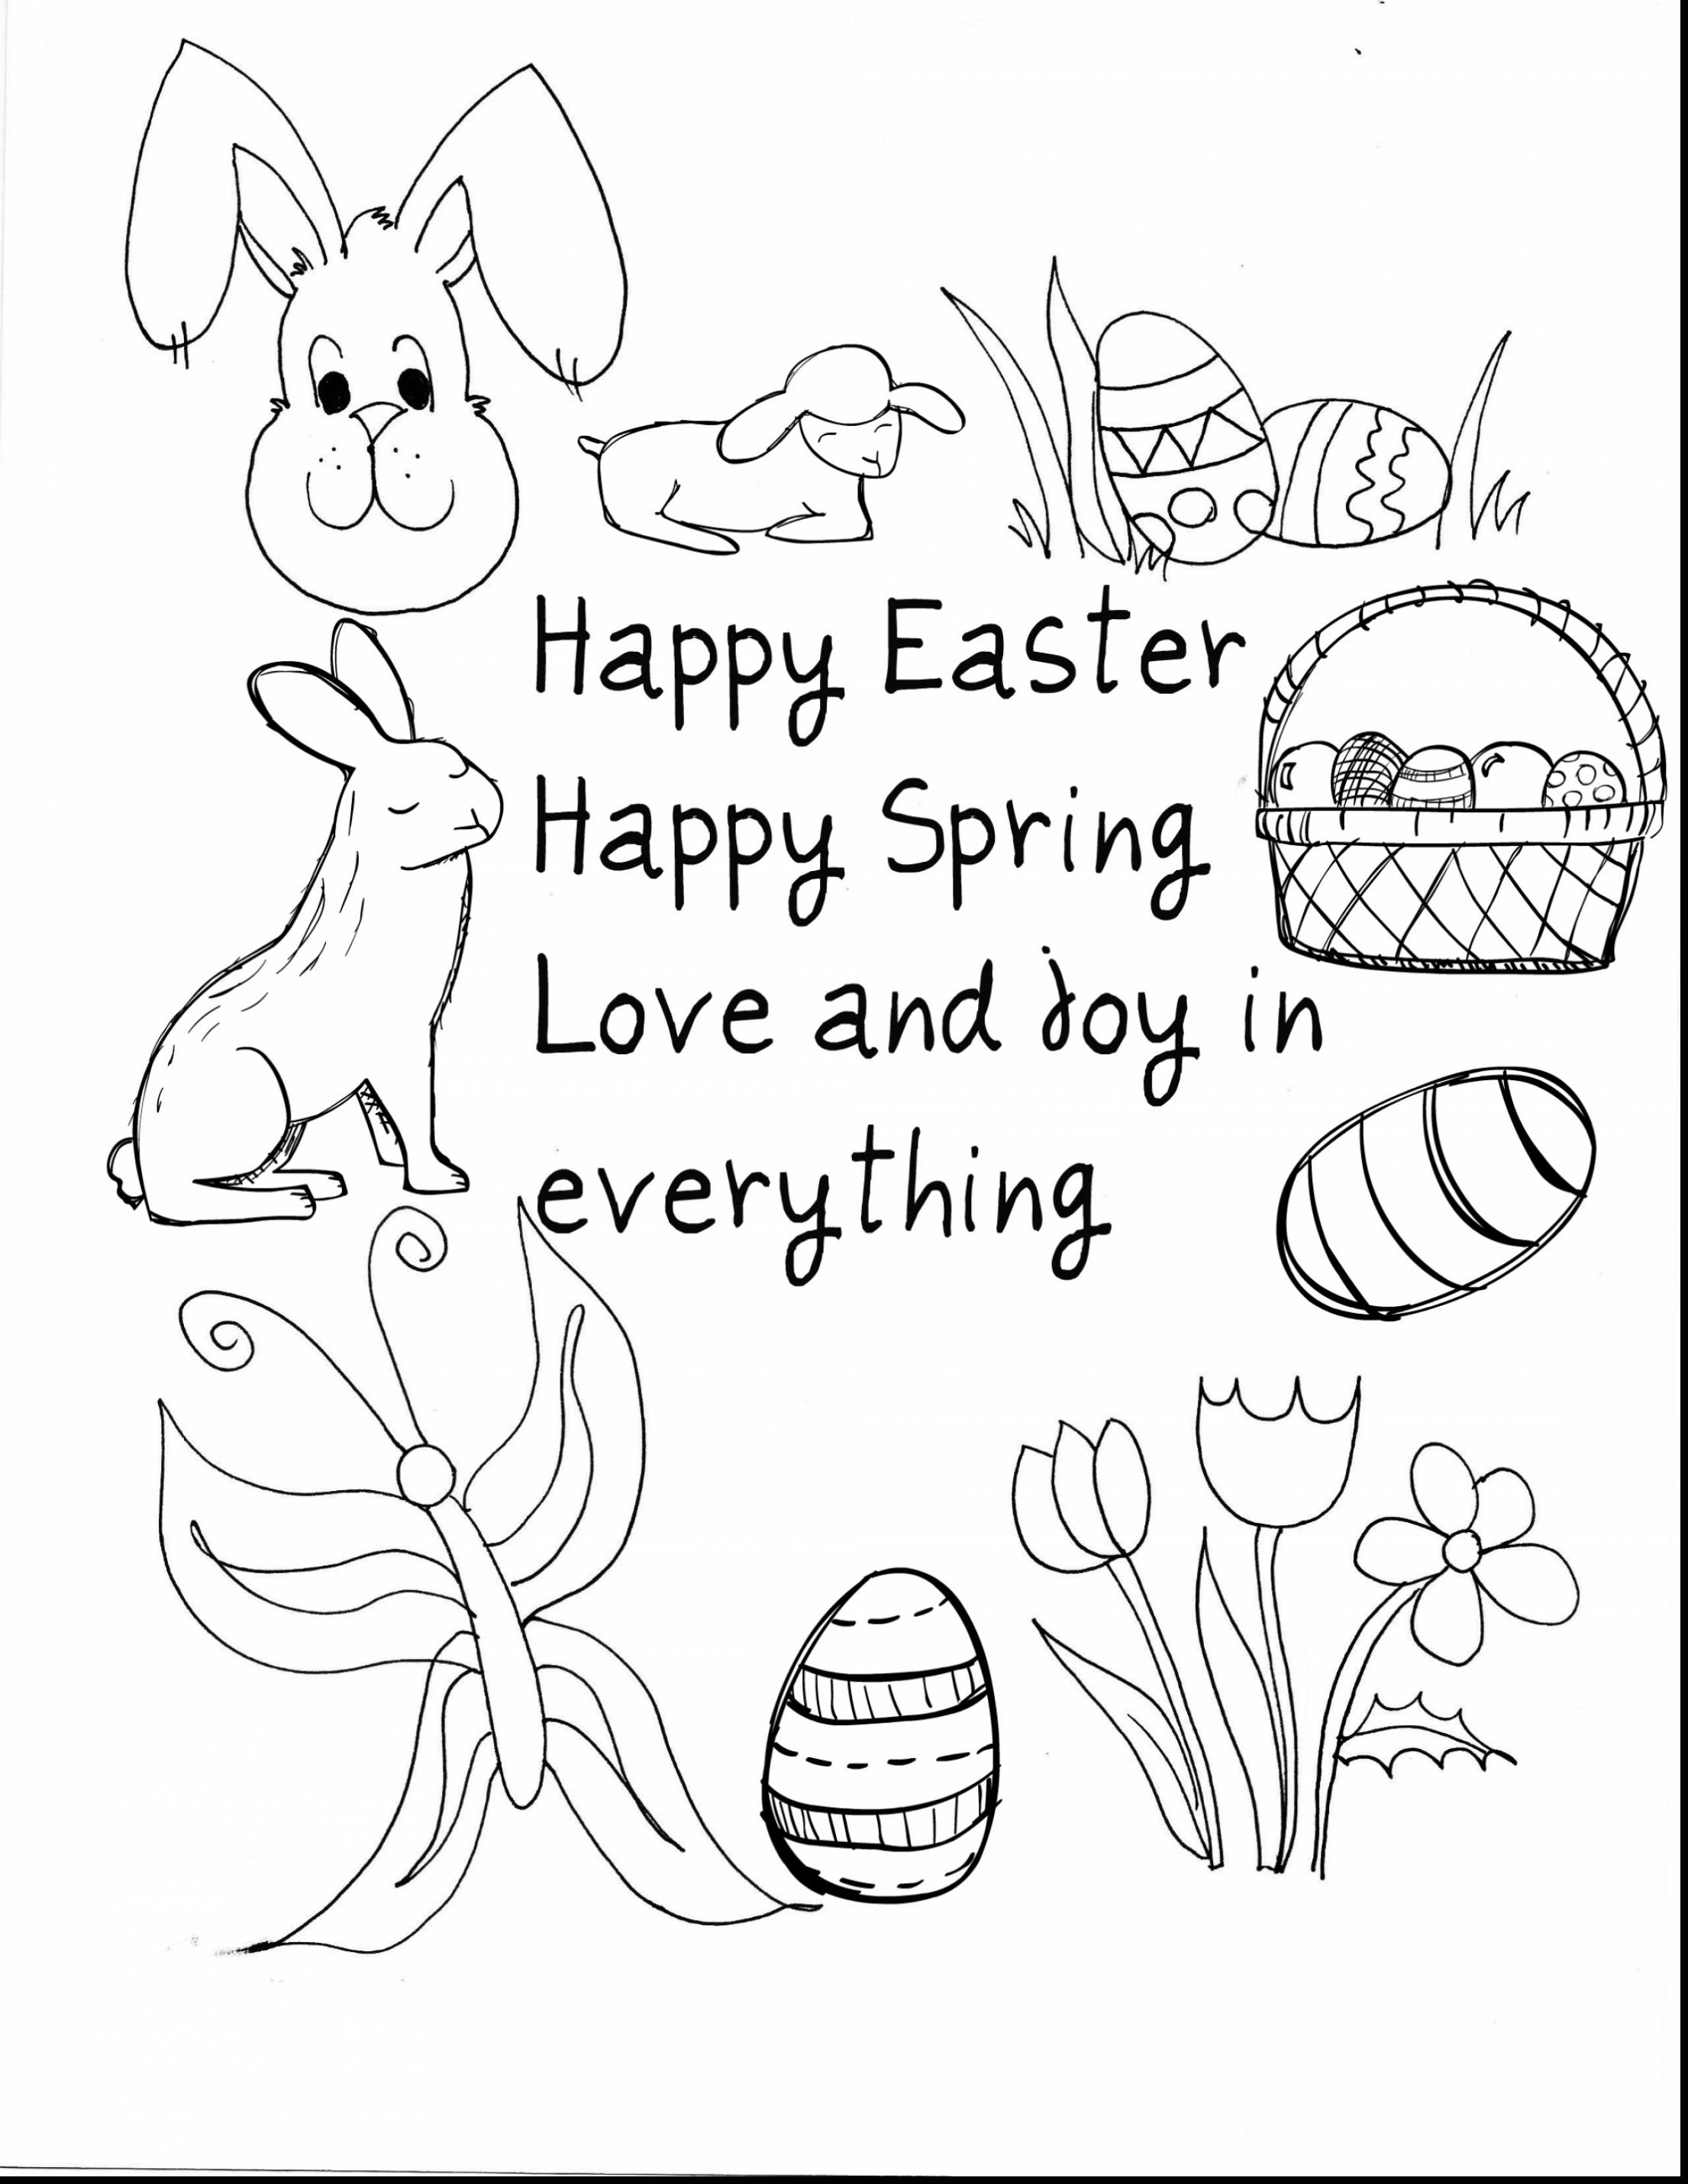 photo relating to Christian Easter Coloring Pages Printable Free named Spiritual Easter Coloring Web pages For Preschoolers at